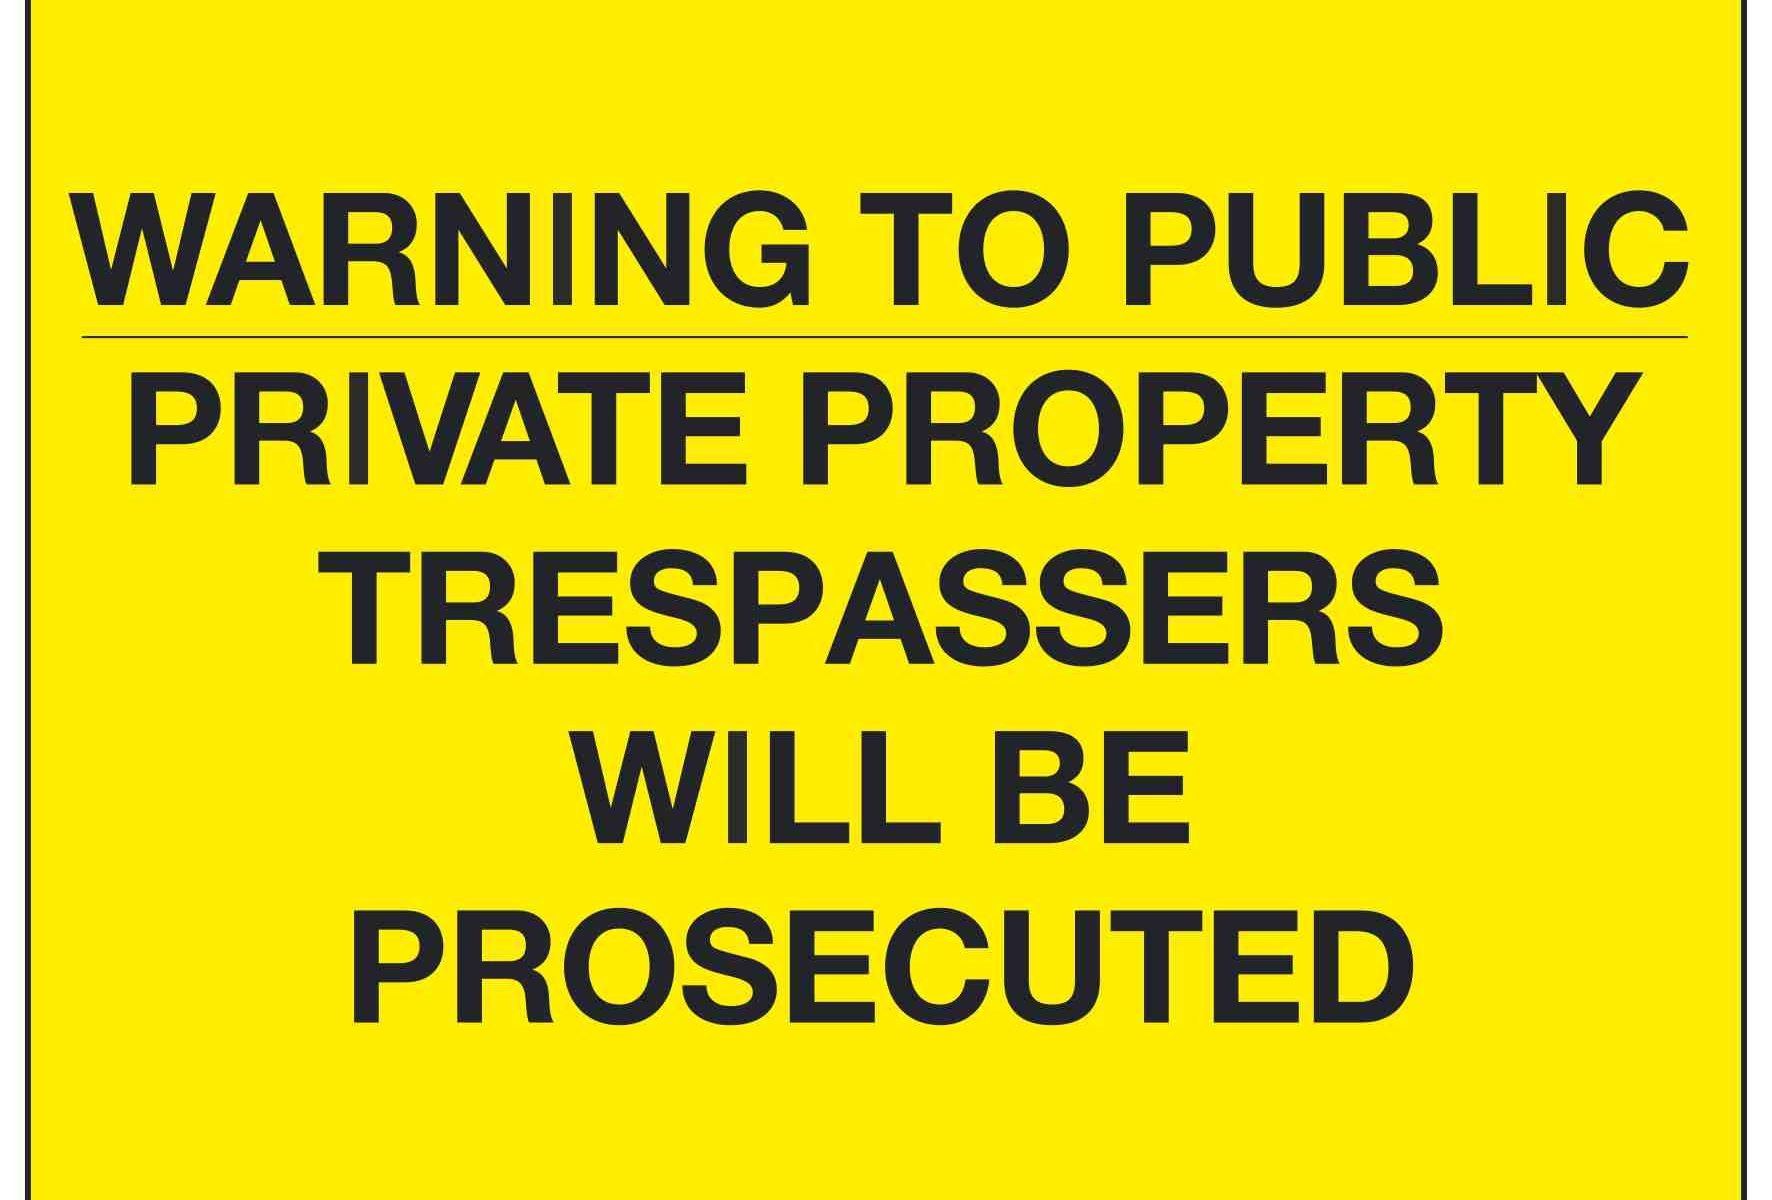 WARNING TO PUBLIC PRIVATE PROPERTY TRESPASSERS WILL BE PROSECUTED